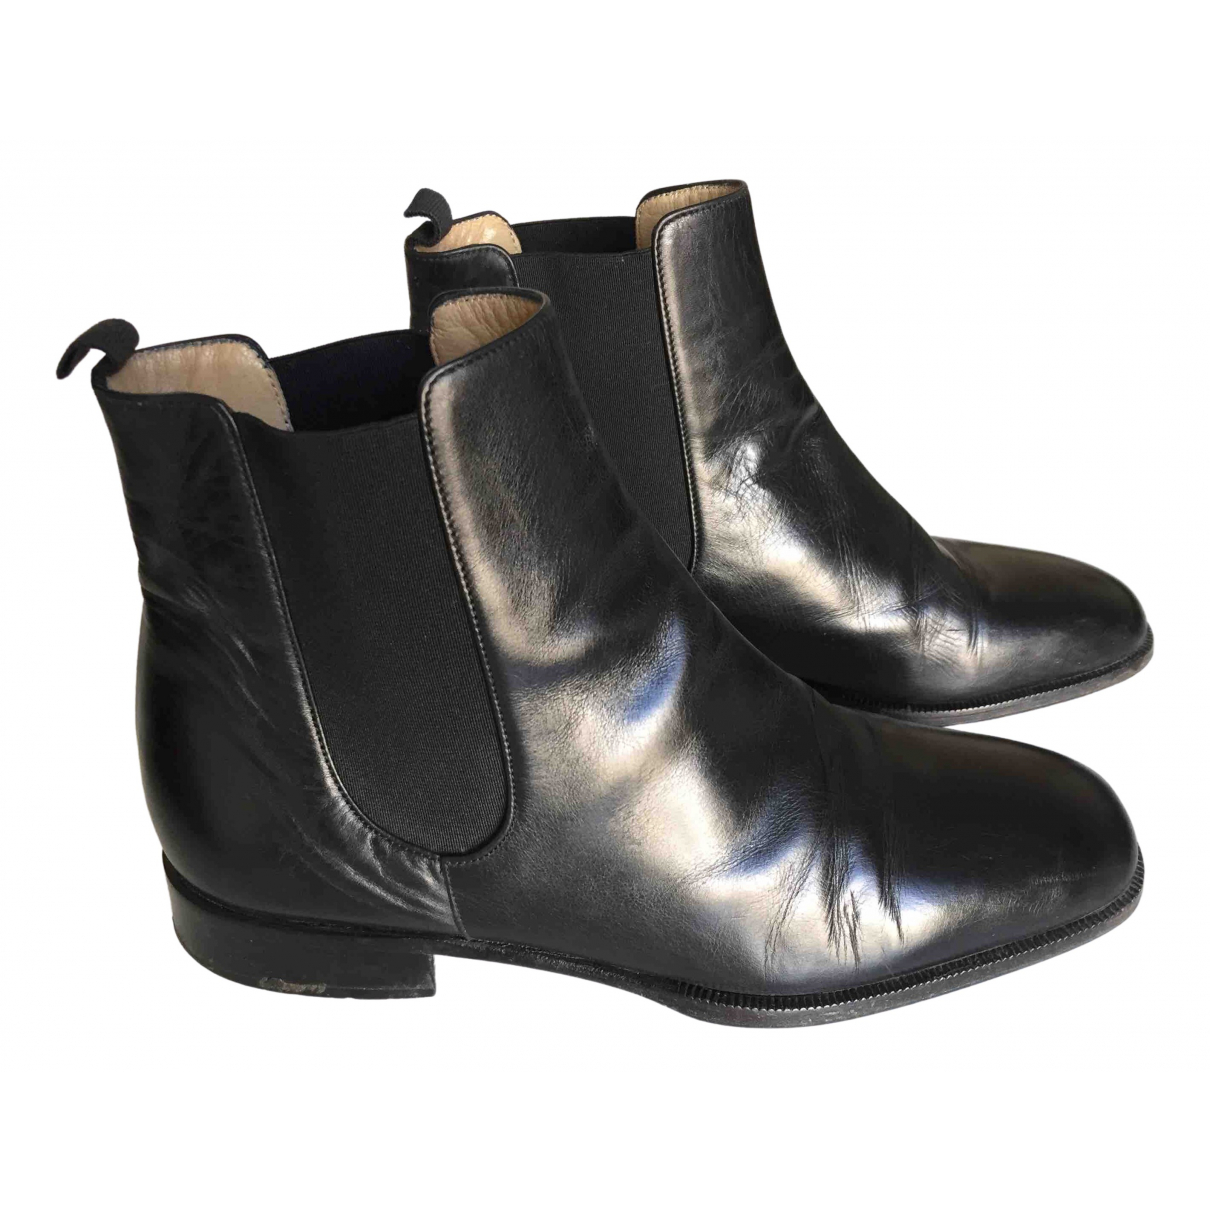 Carel \N Black Leather Boots for Women 38.5 EU